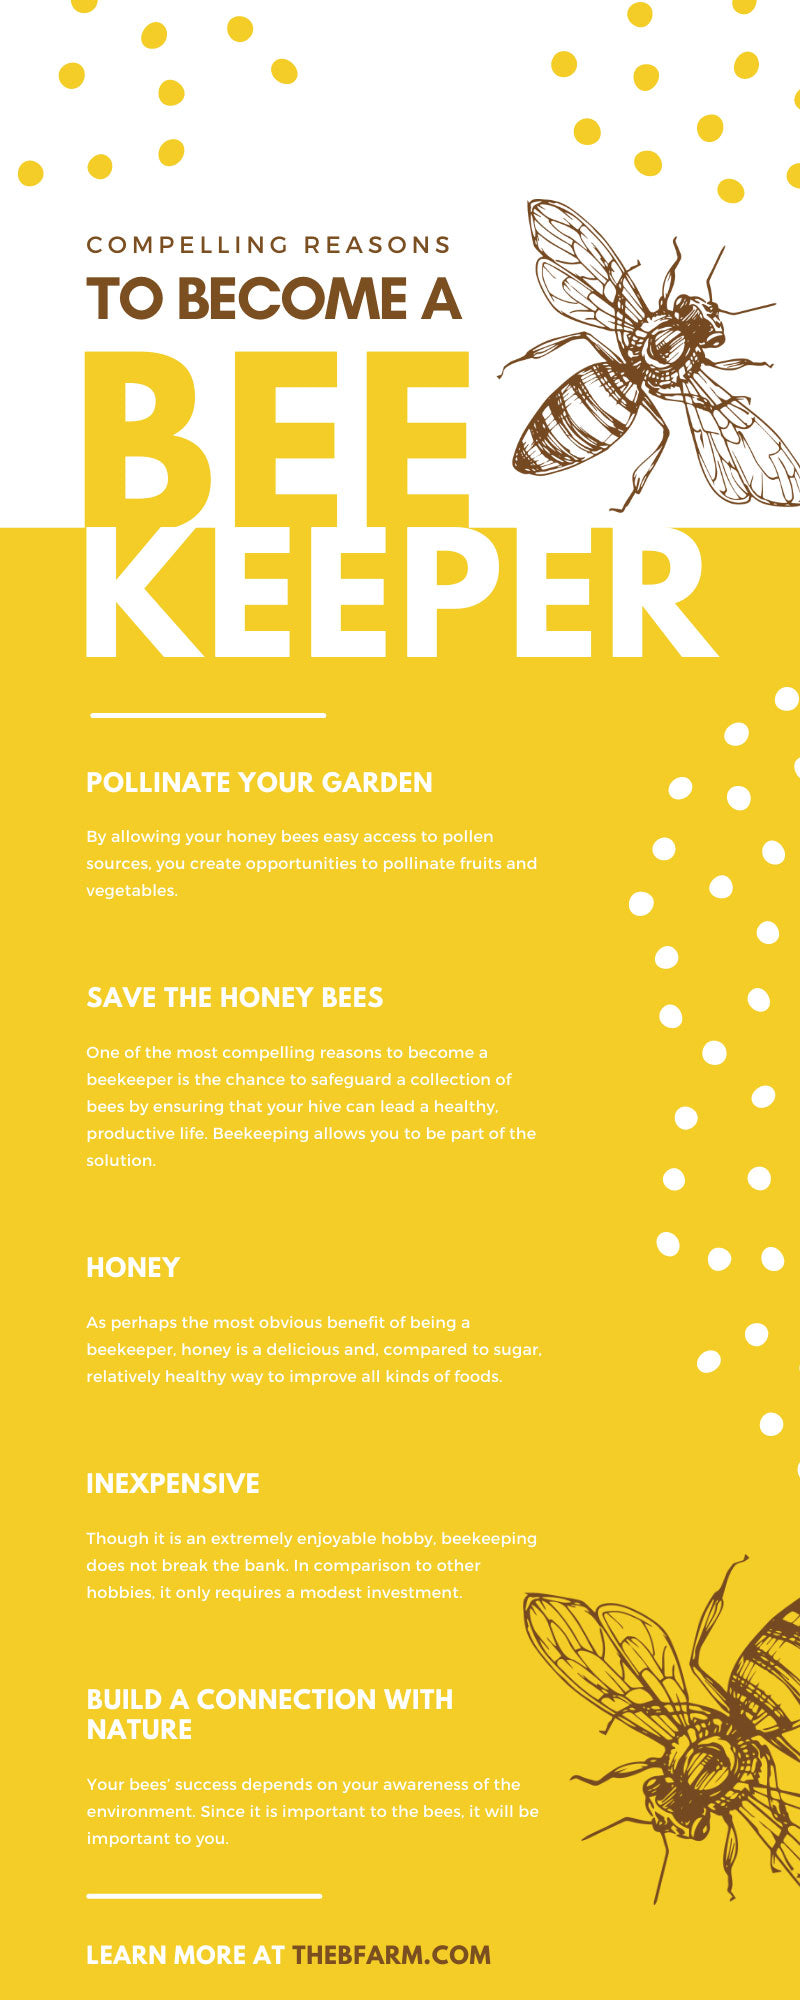 Compelling Reasons To Become a Beekeeper